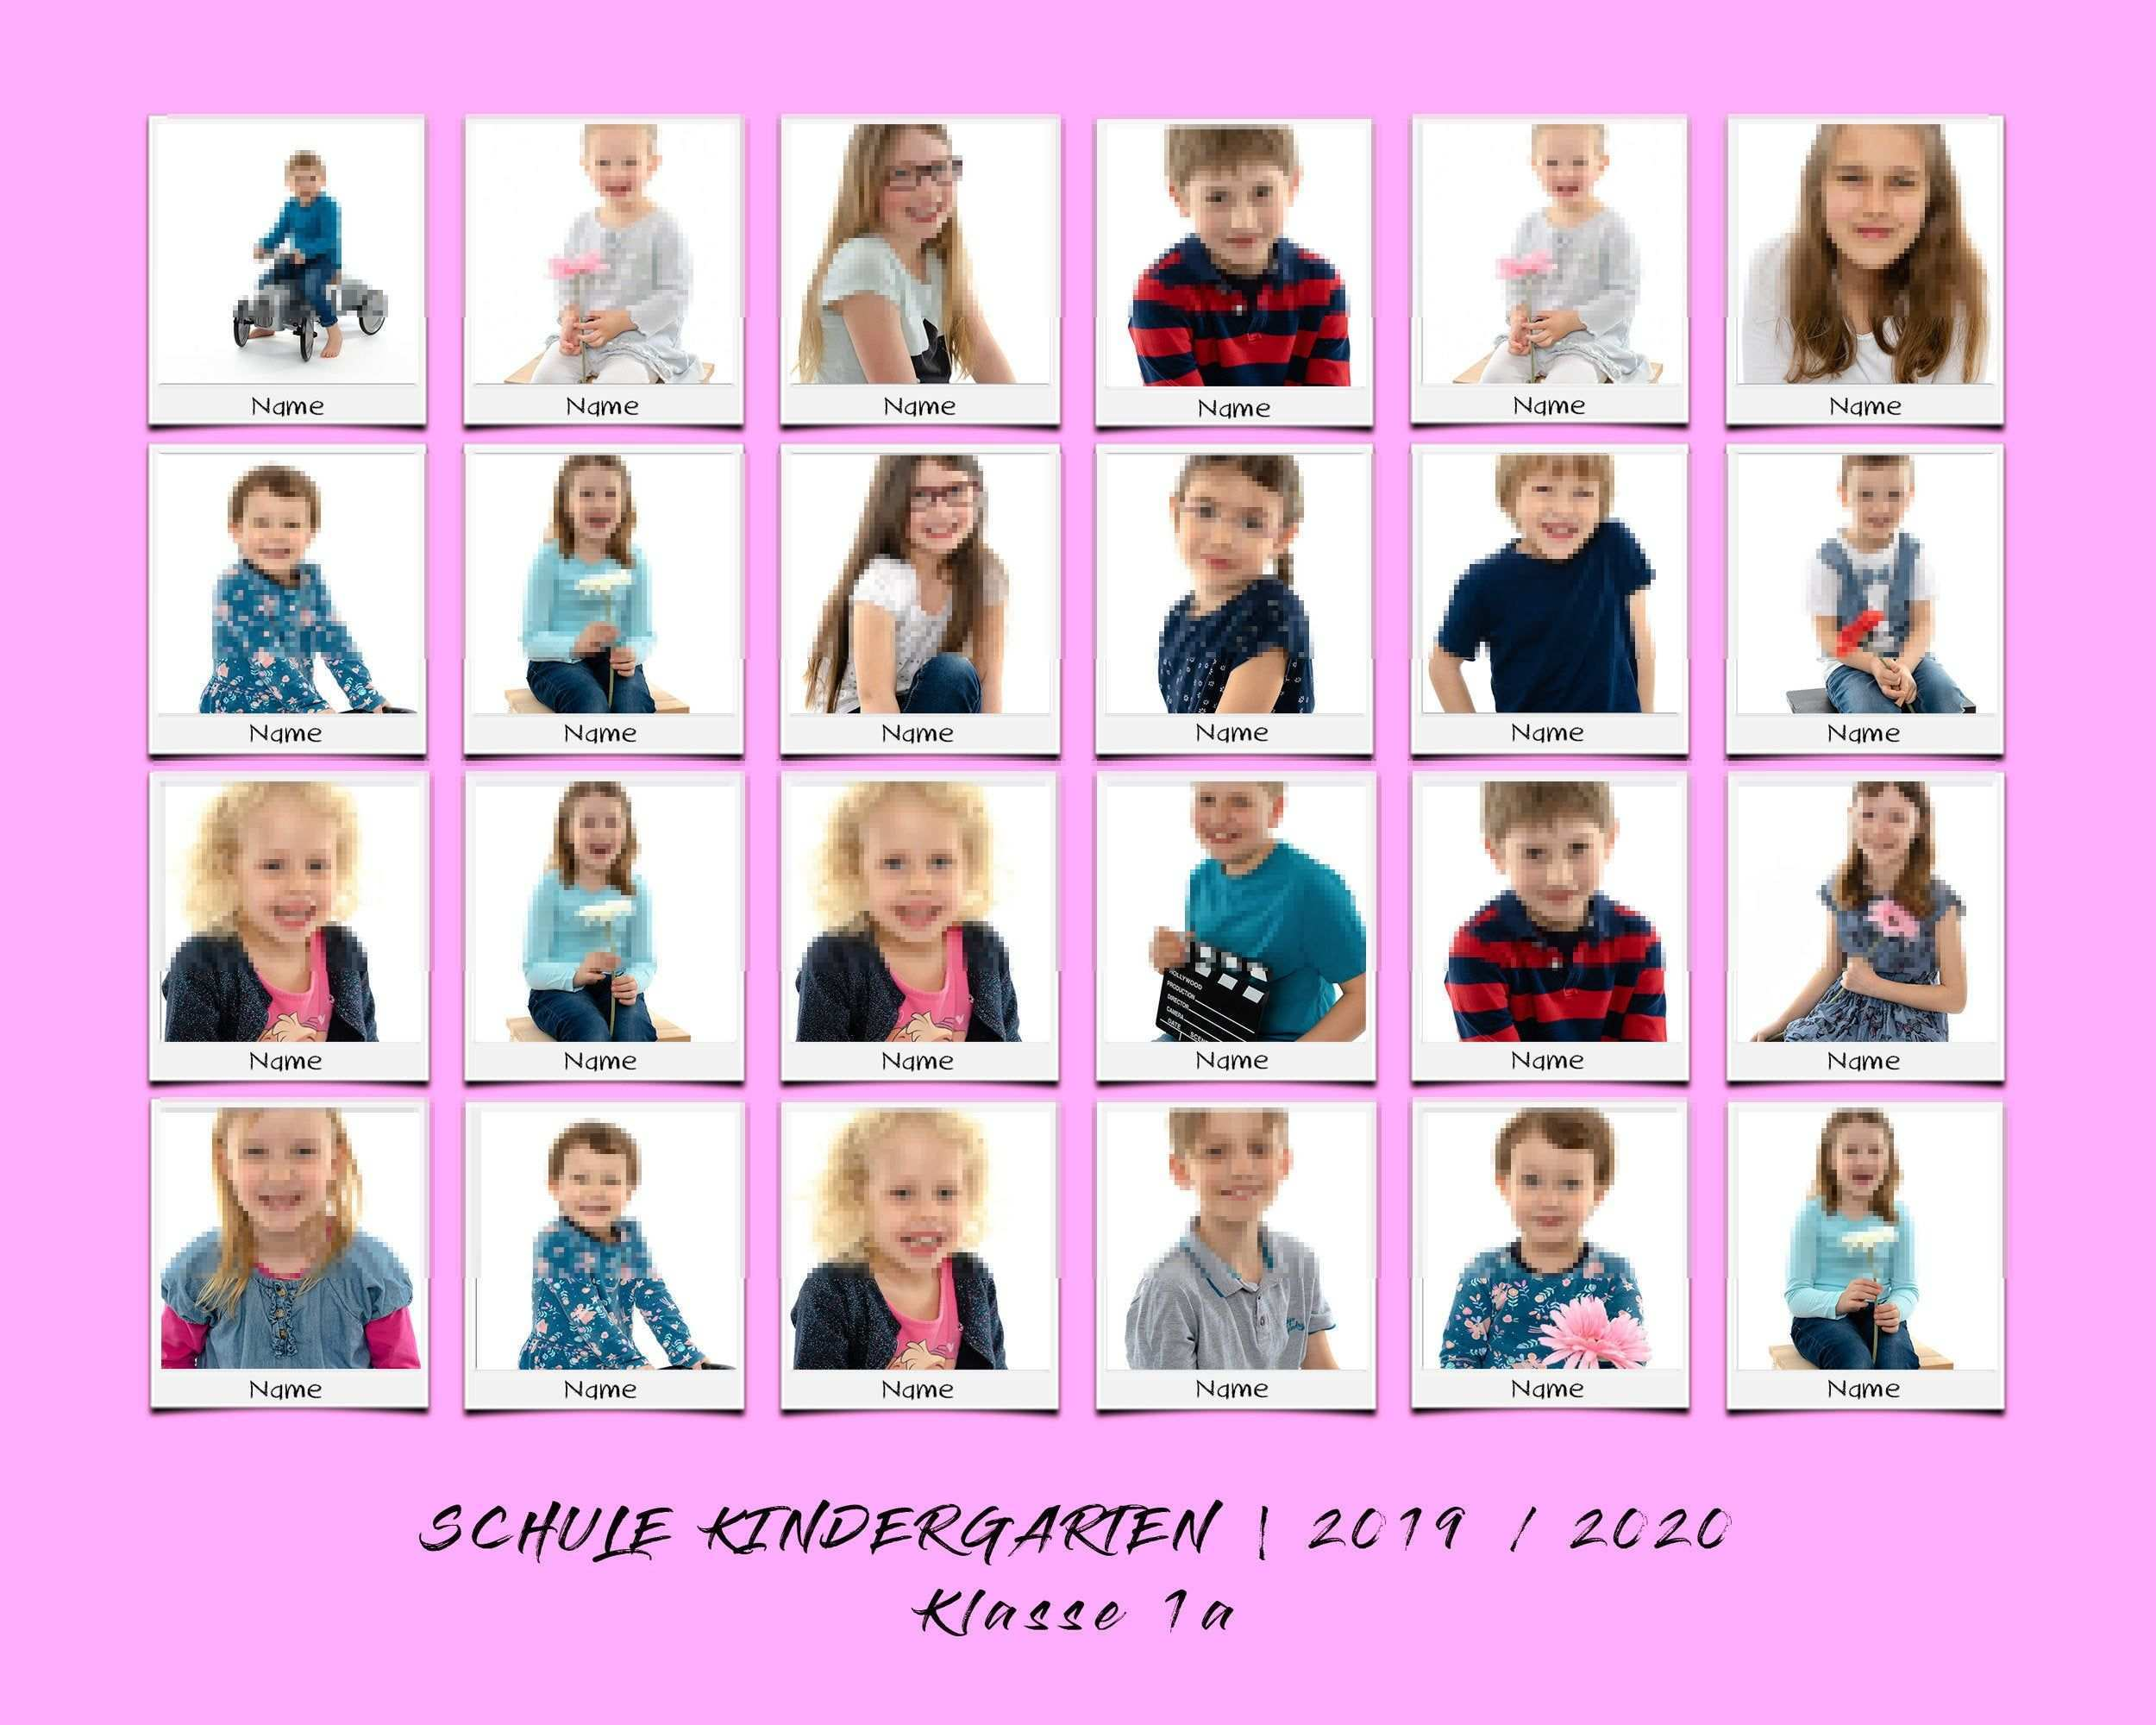 Custom Class Photo Collage Template For School Kindergarten Classroom Layered Psd File 8x10 3 2 In Polaroid Style Instant Download Photo Collage Template School Photography Collage Template